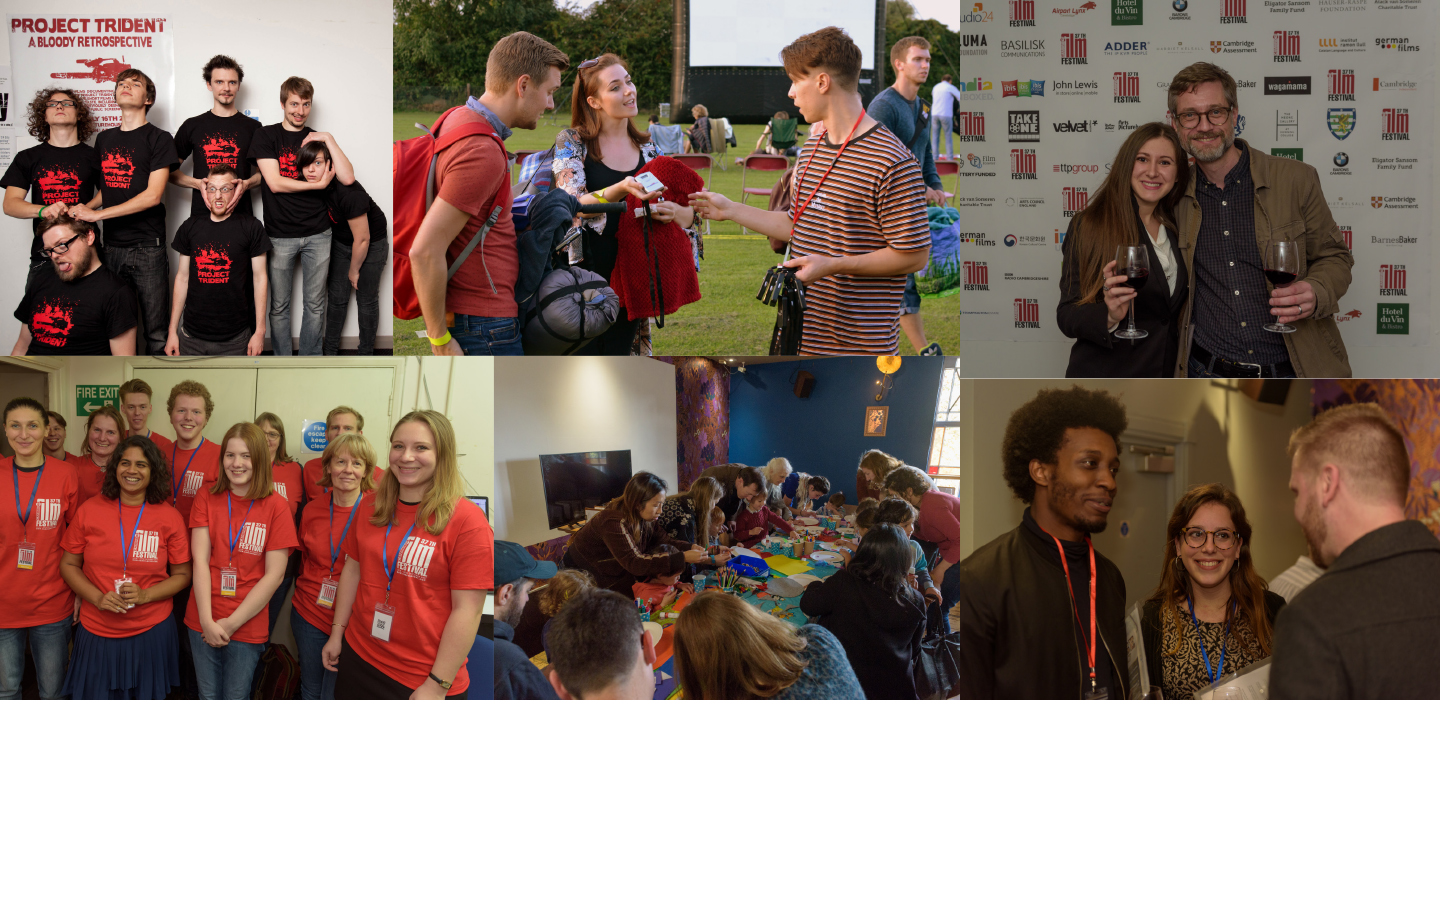 collage of happy young people